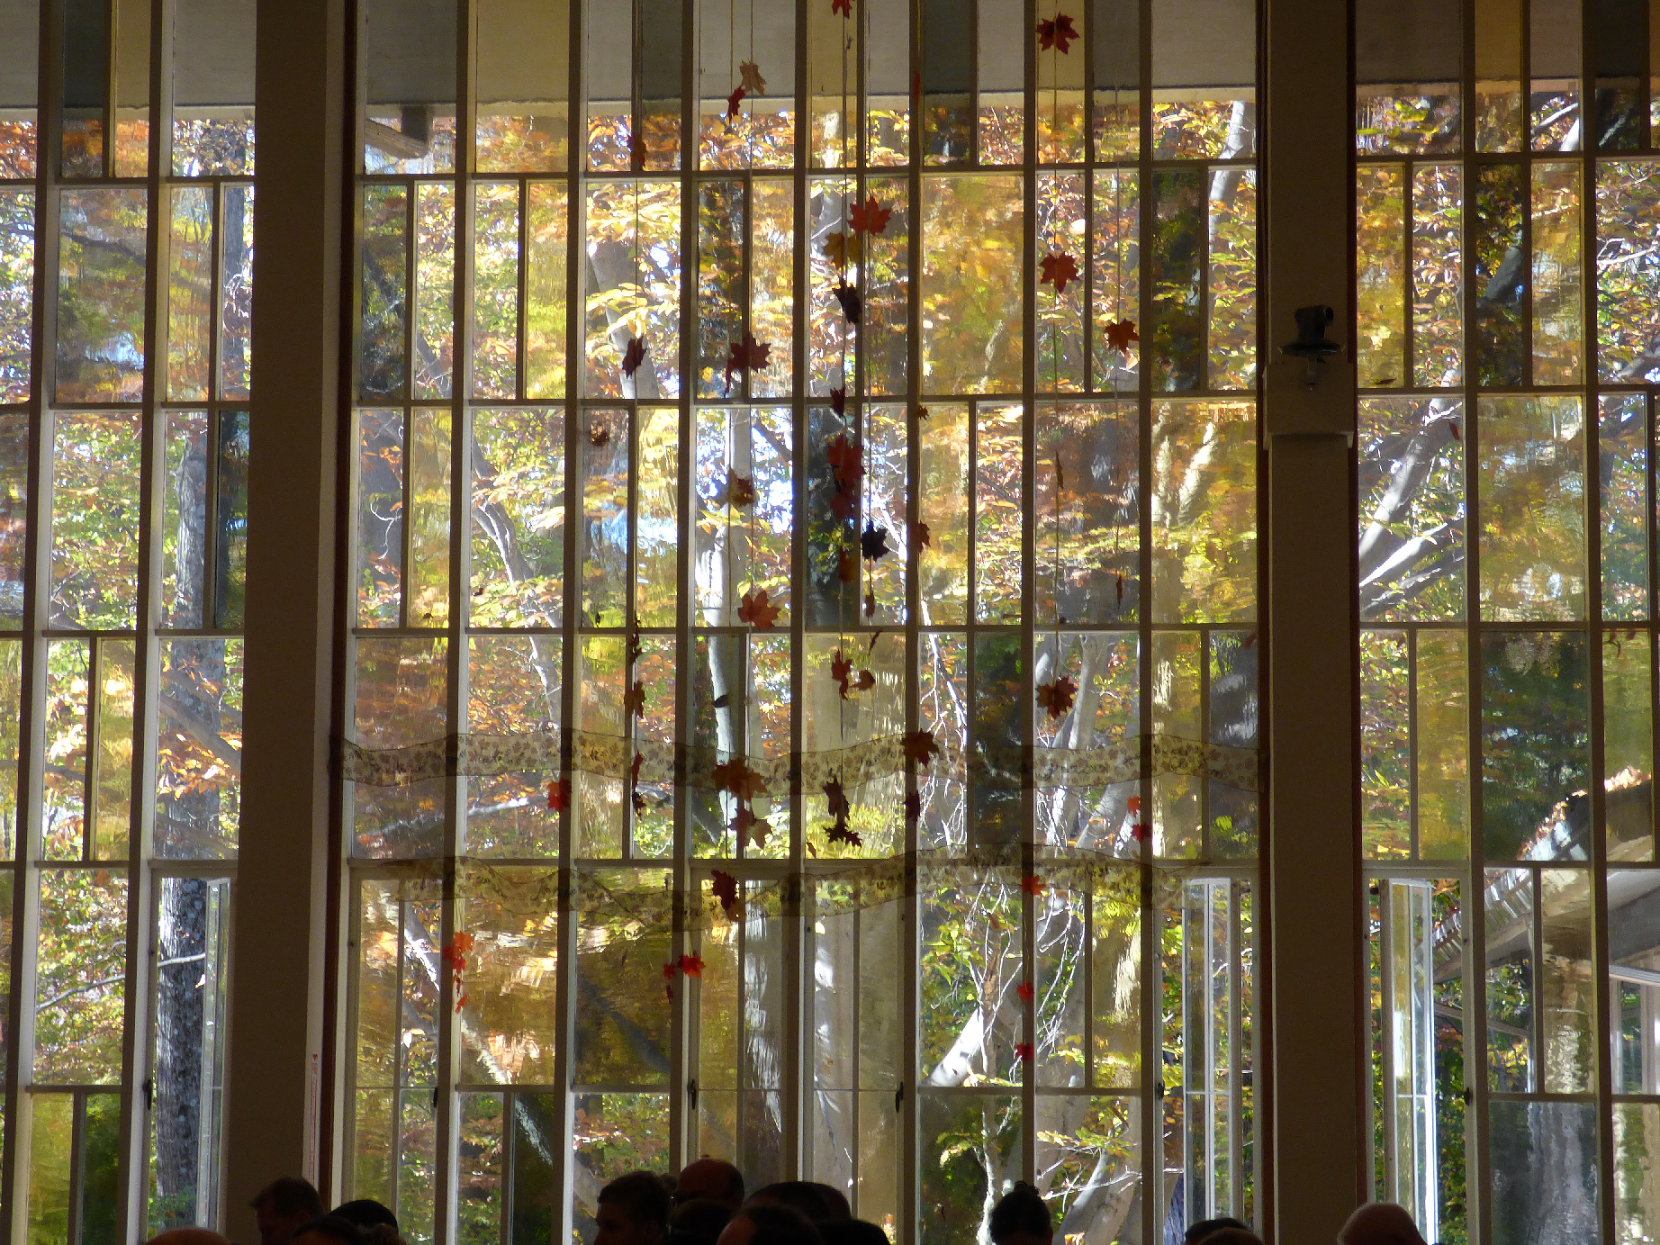 looking out the Cedar Lane Sanctuary Windows during a sunny fall day